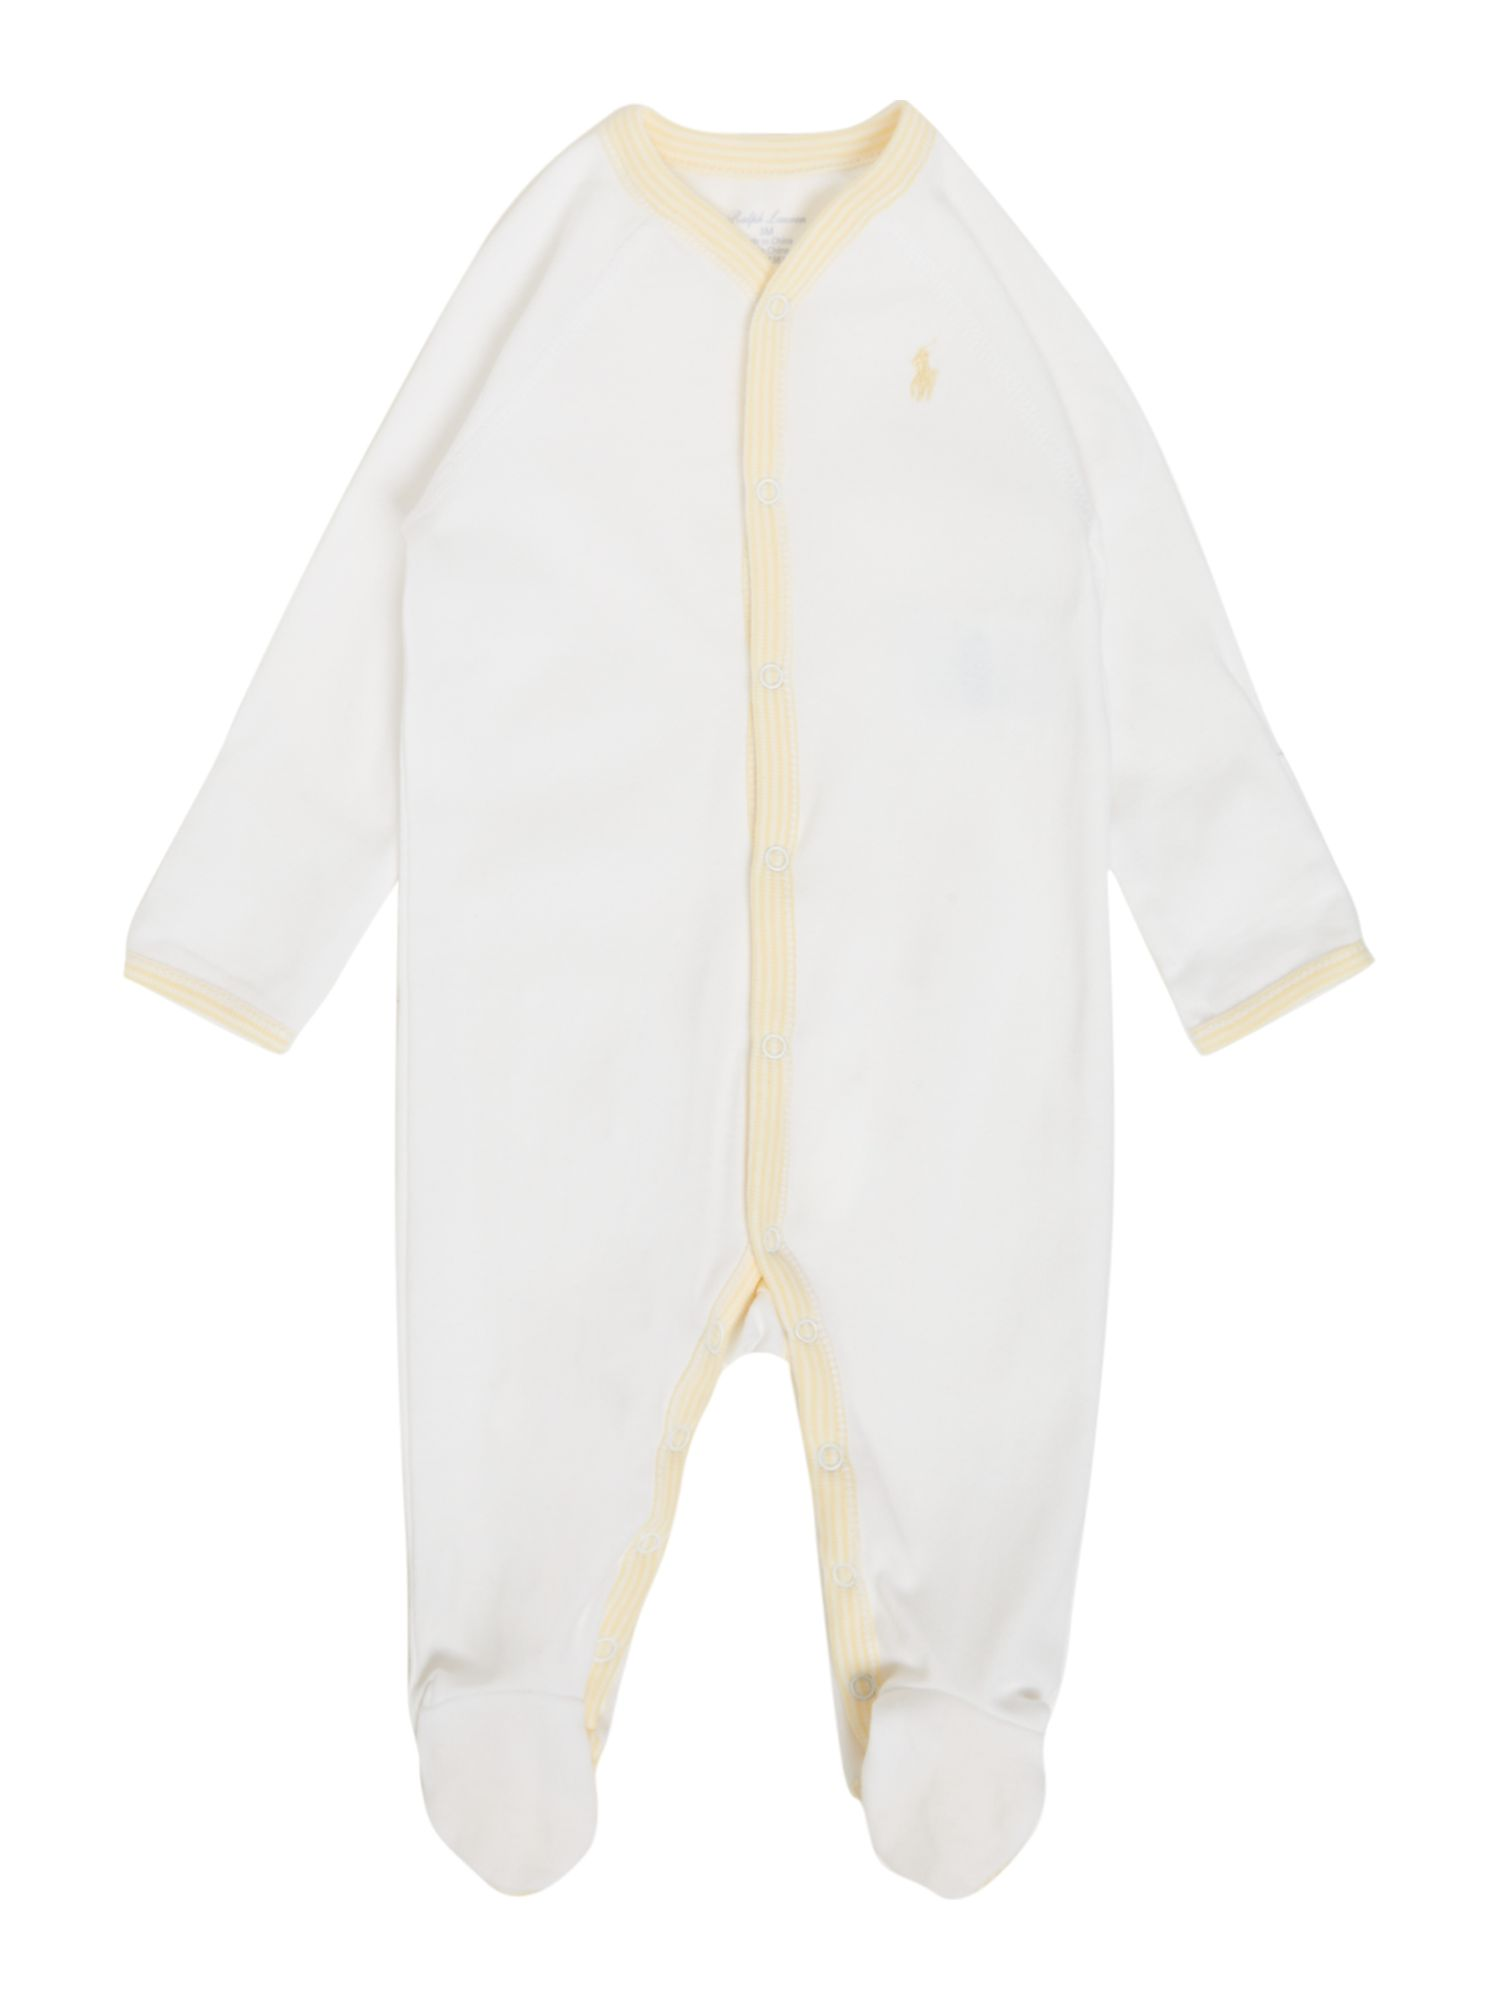 Unisex duck placket all-in-one